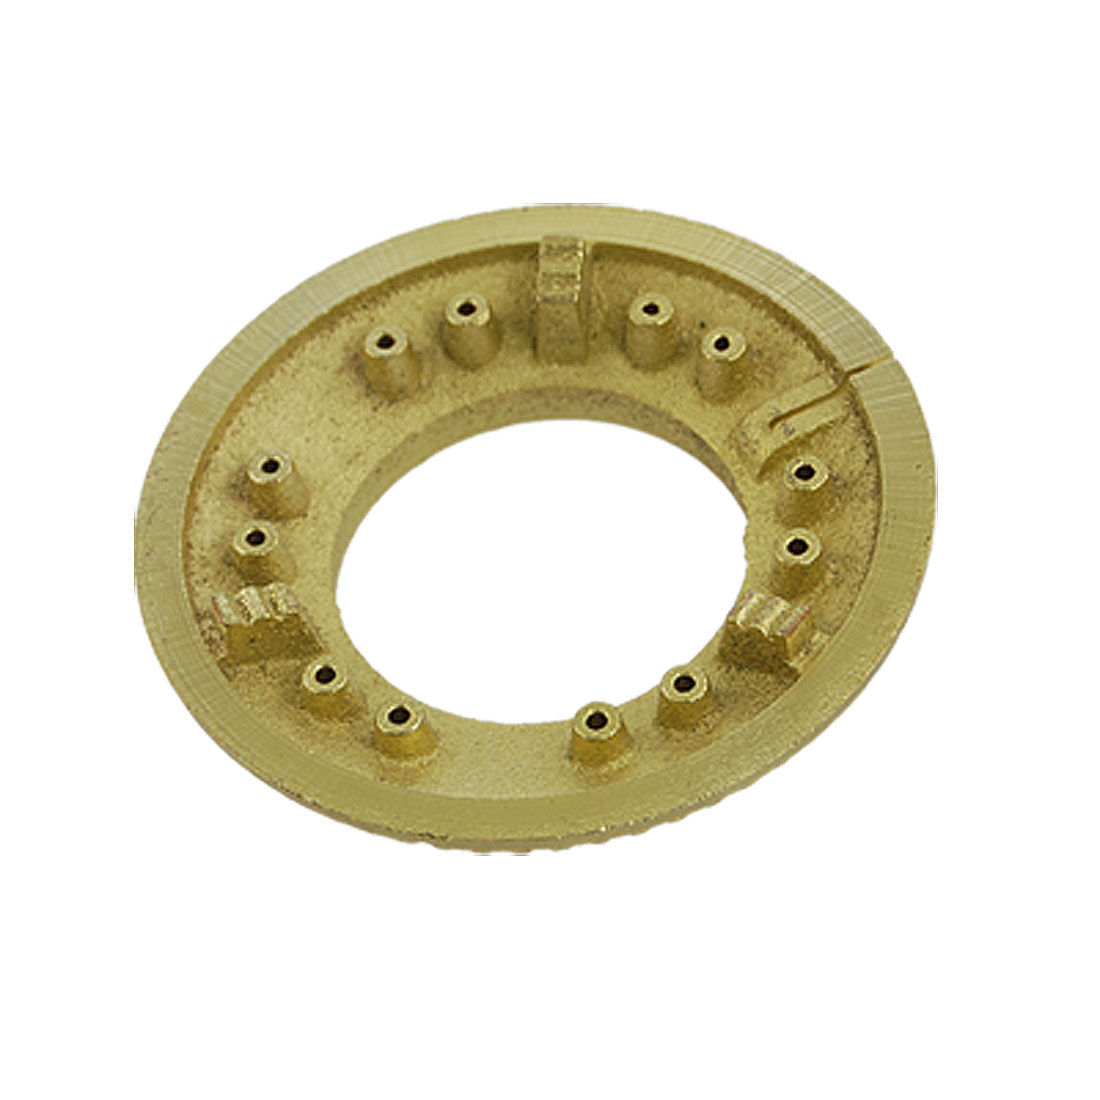 "Gas Cooker Fire Separator 2 1/4"" Brass Burner Head Gold Tone"